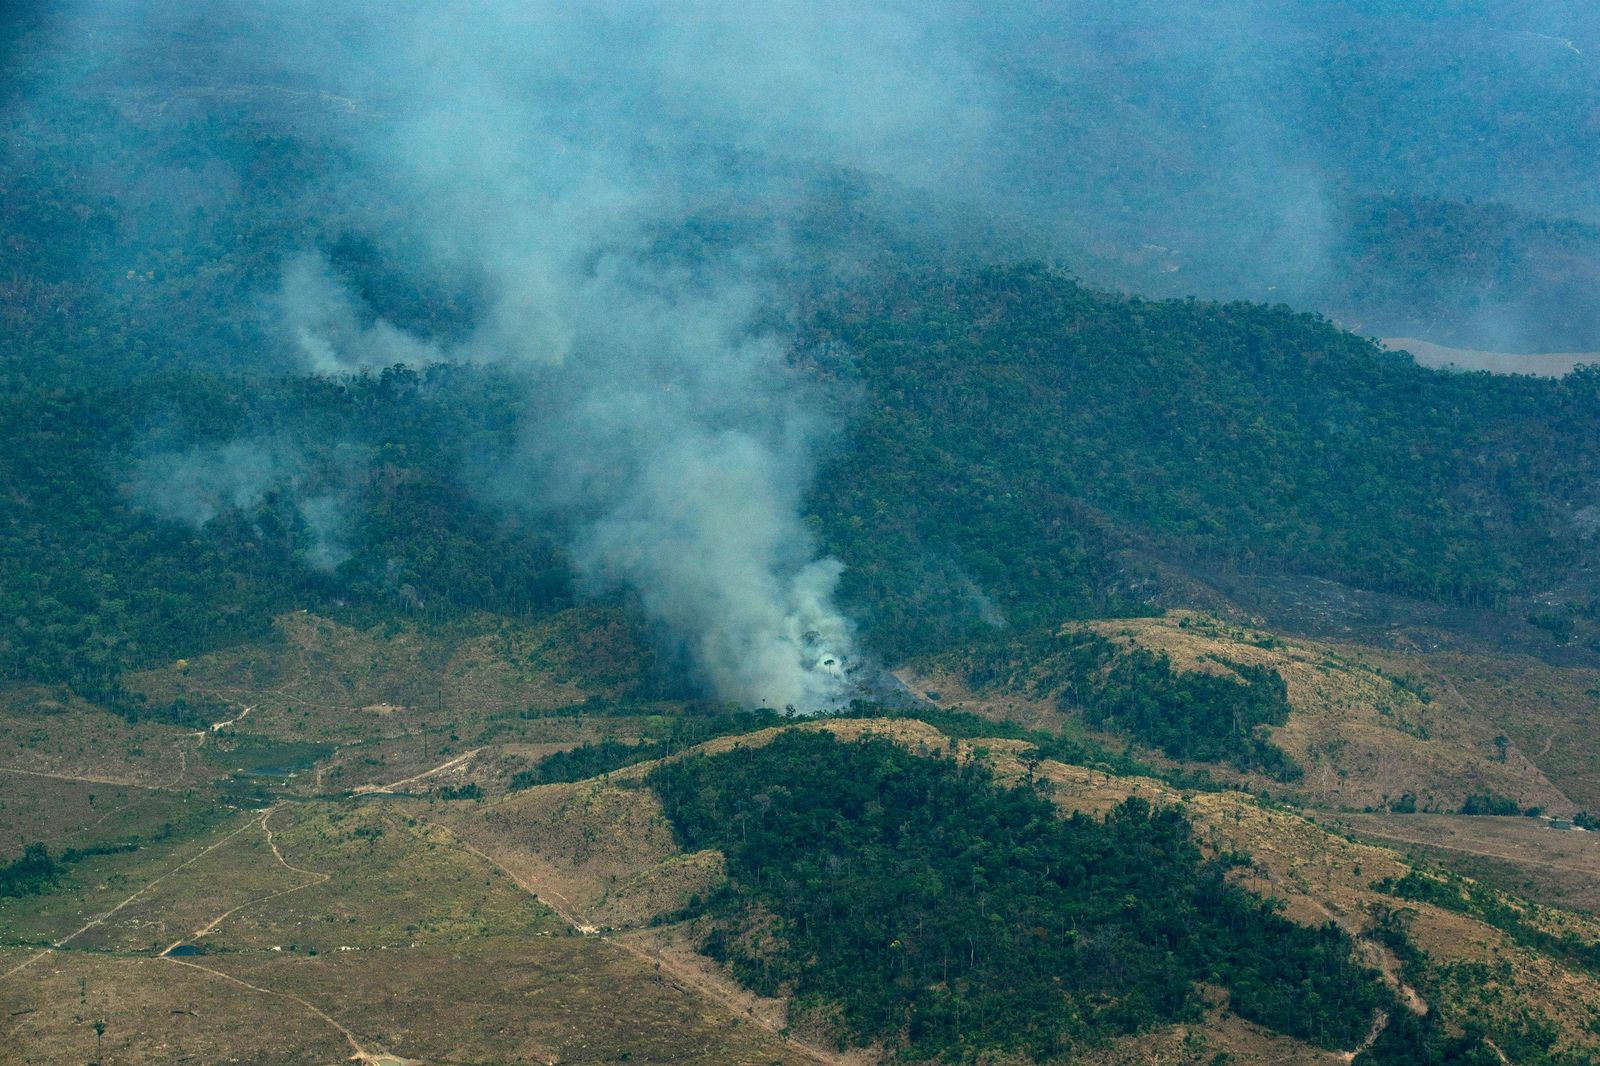 Smoke rises from a rainforest in Altamira, Para state, Brazil, Wednesday, Aug. 28, 2019. Brazilian President Jair Bolsonaro said Wednesday that Latin America's Amazon countries will meet in September to discuss both protecting and developing the rainforest region, which has been hit by weeks of devastating fires.(AP Photo/Leo Correa)